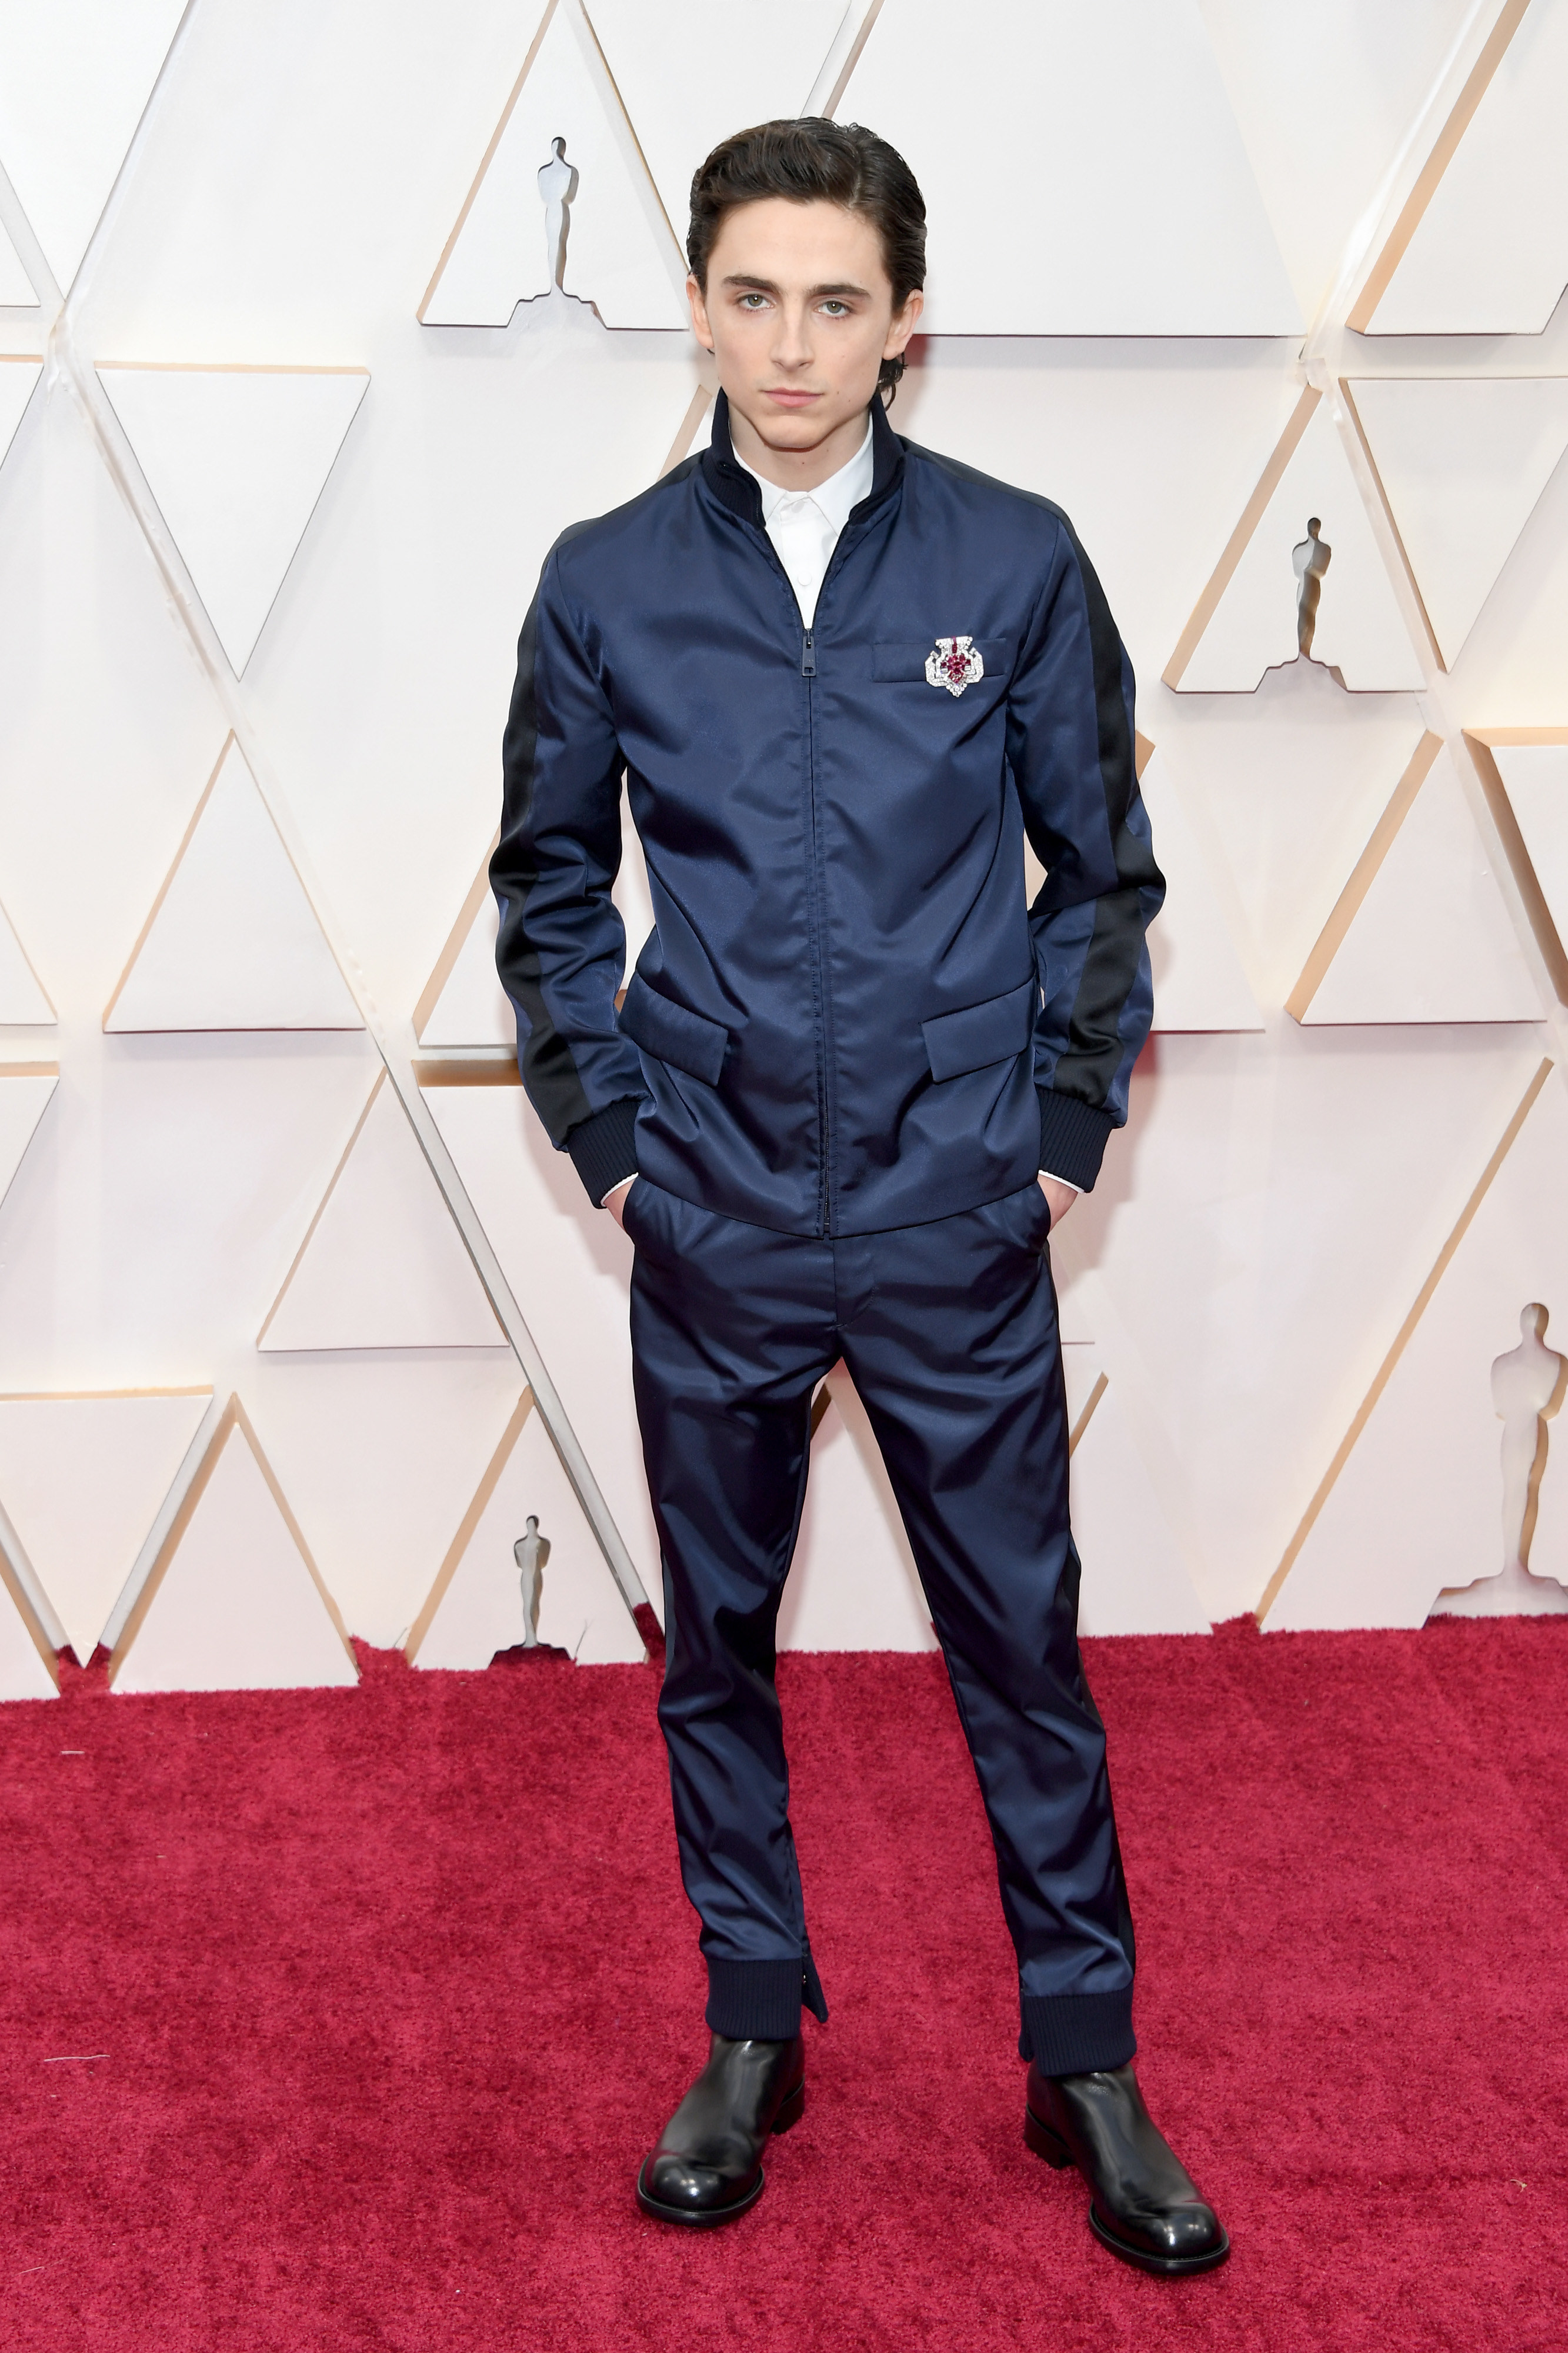 Timothee wears a blue satin outfit to an event